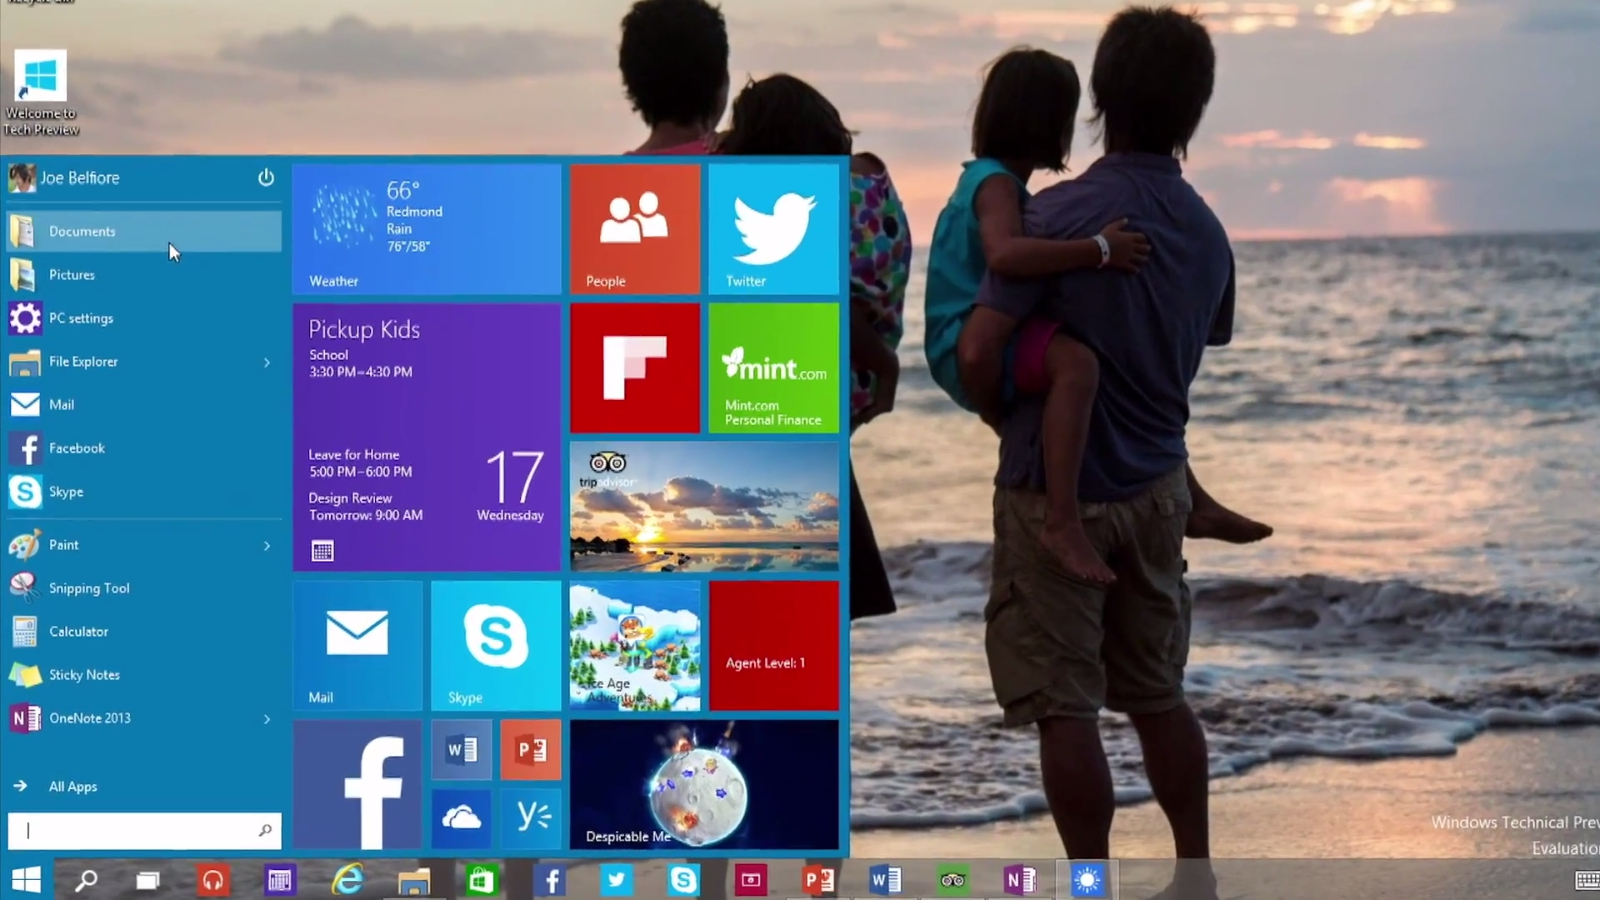 Windows 8 Vs. Windows 10